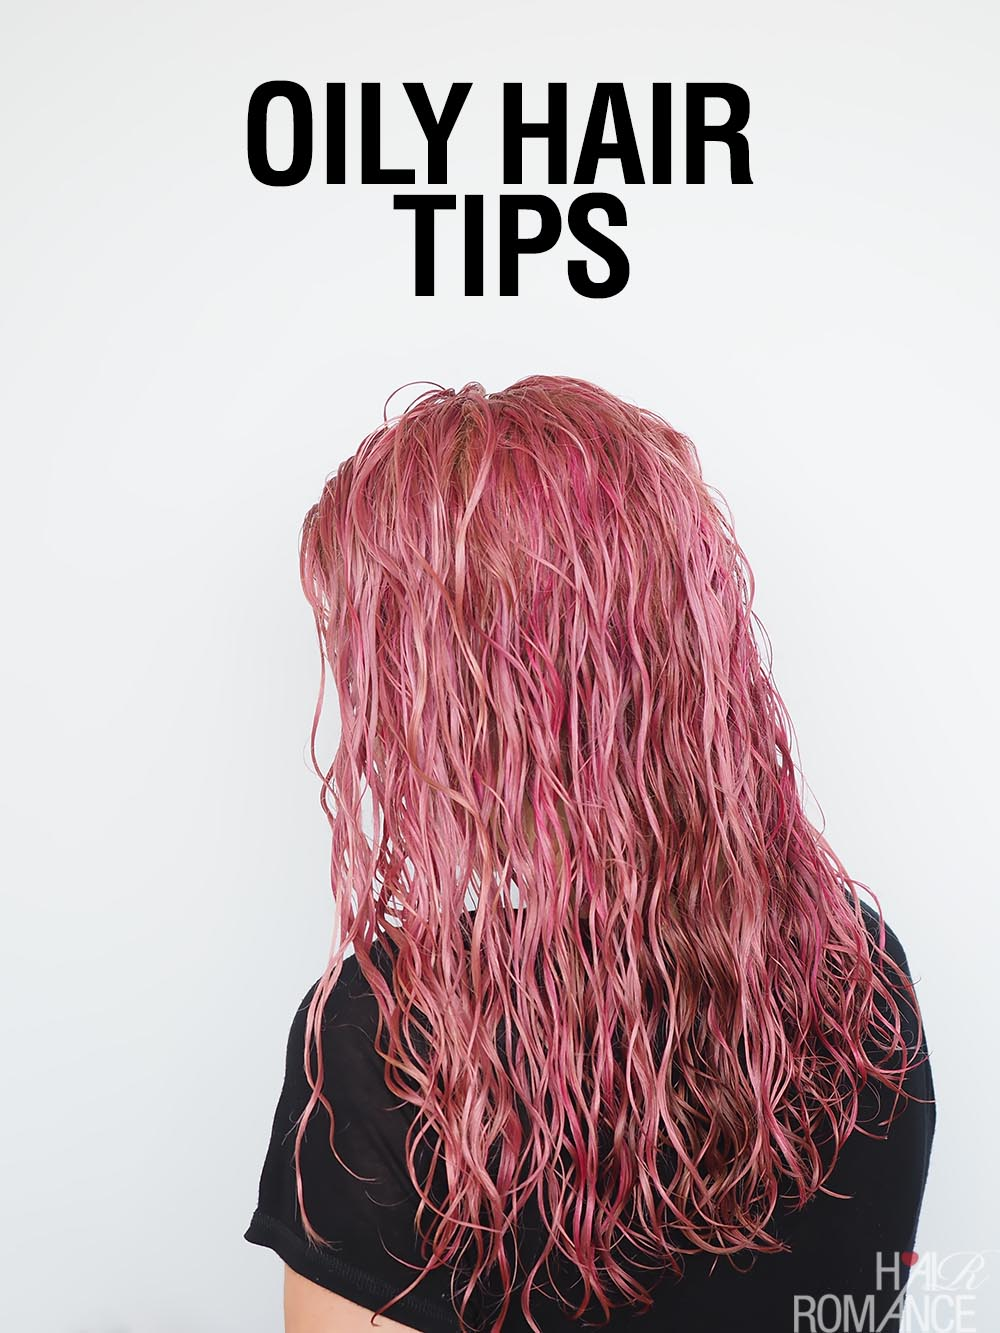 Oily Hair Tips